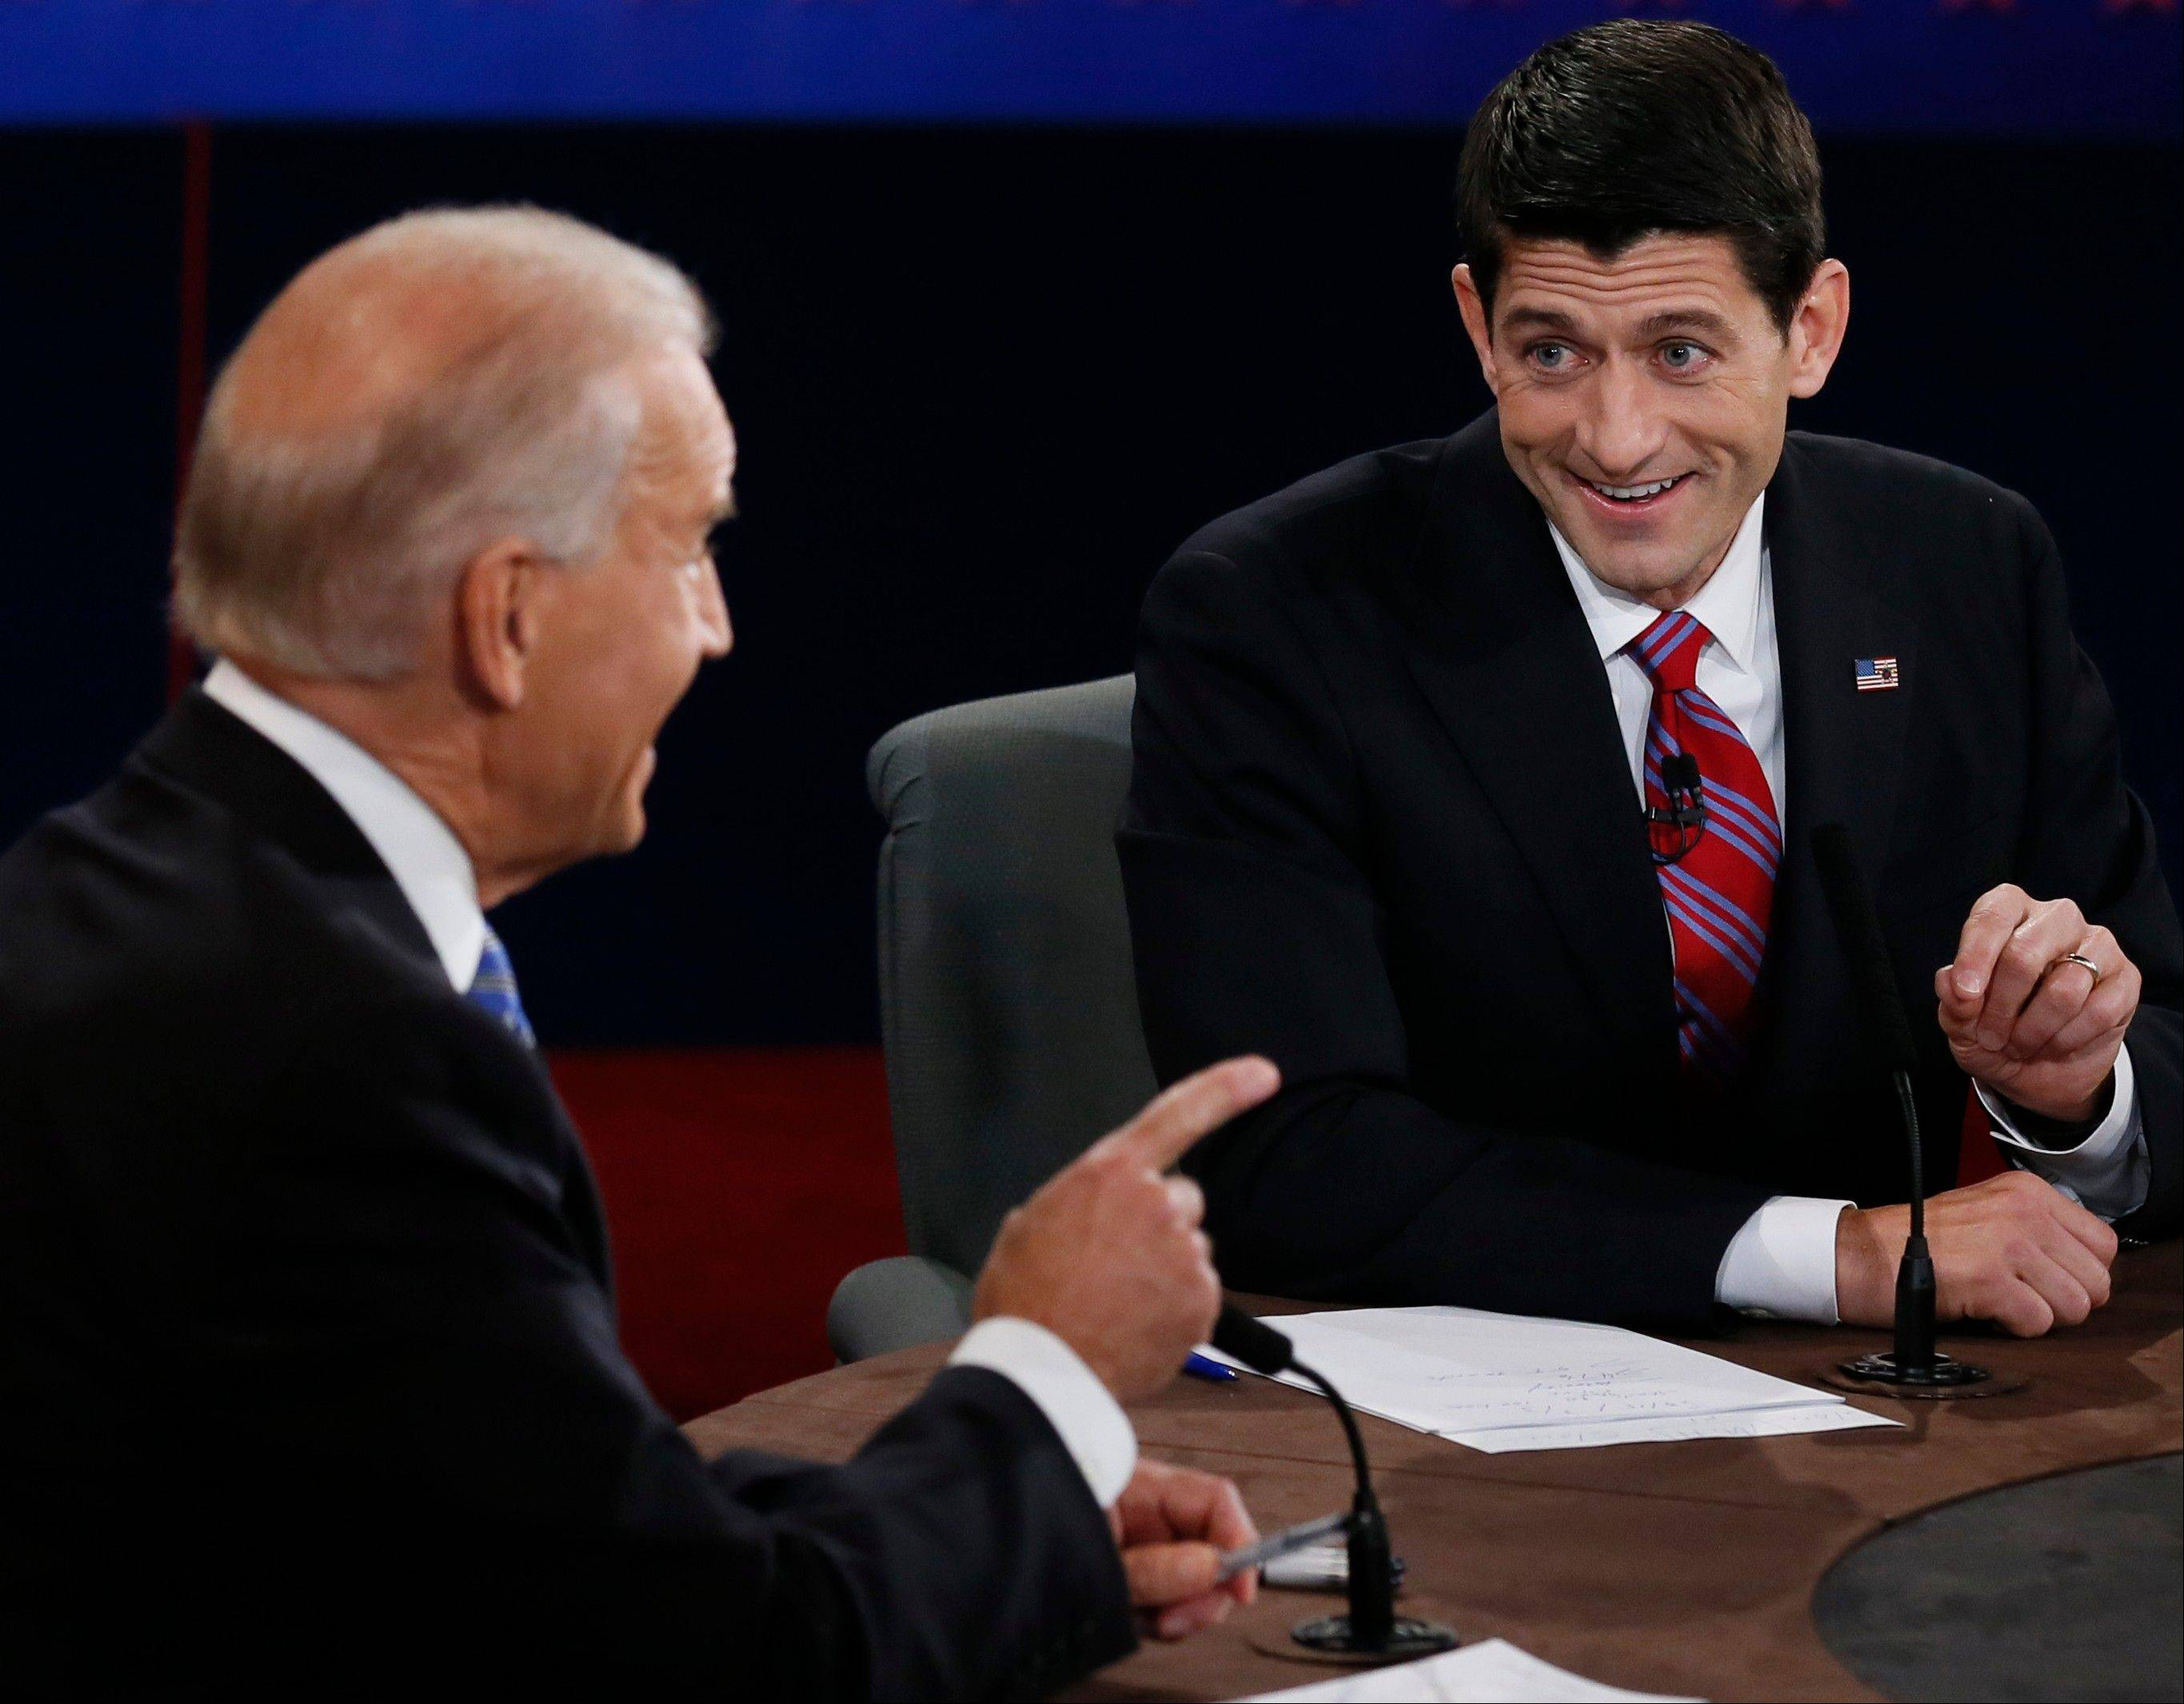 Vice President Joe Biden and Republican vice presidential nominee Rep. Paul Ryan of Wisconsin participate in the vice presidential debate at Centre College.